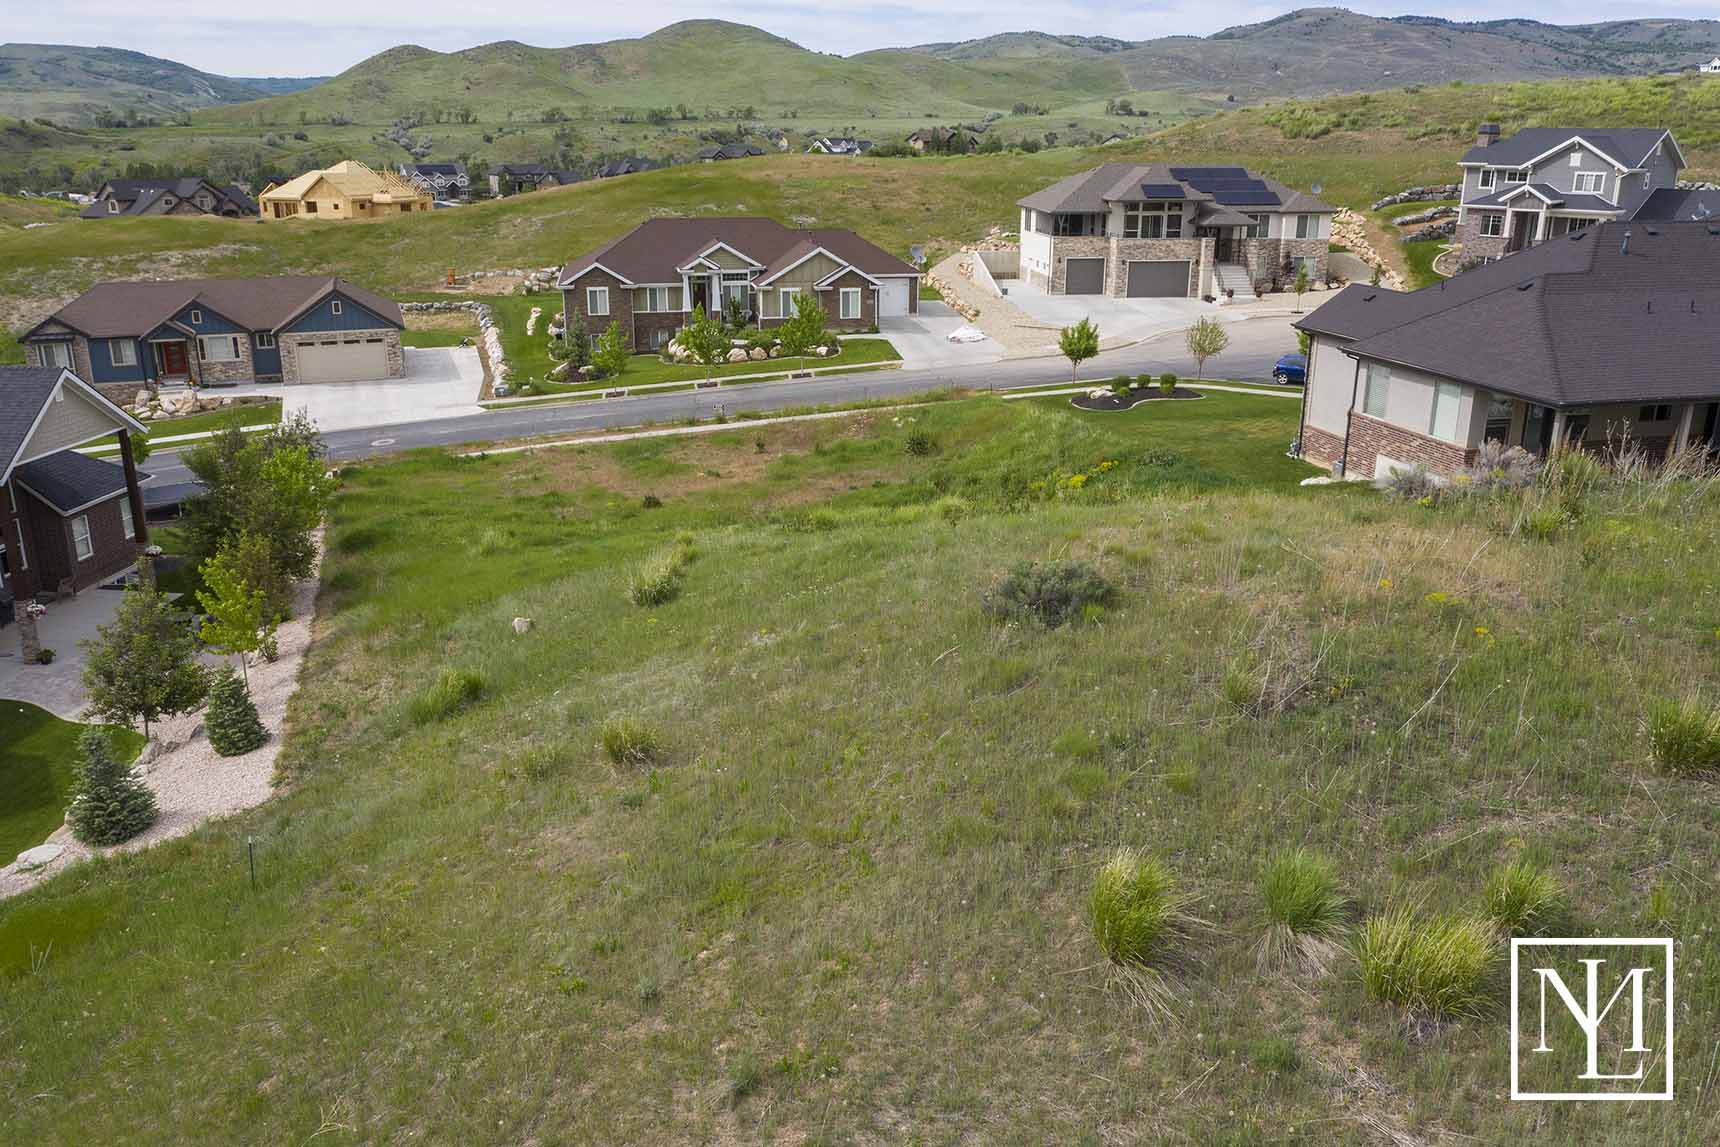 3521 W Sunrise Circle, Mountain Green, UT 84050 10